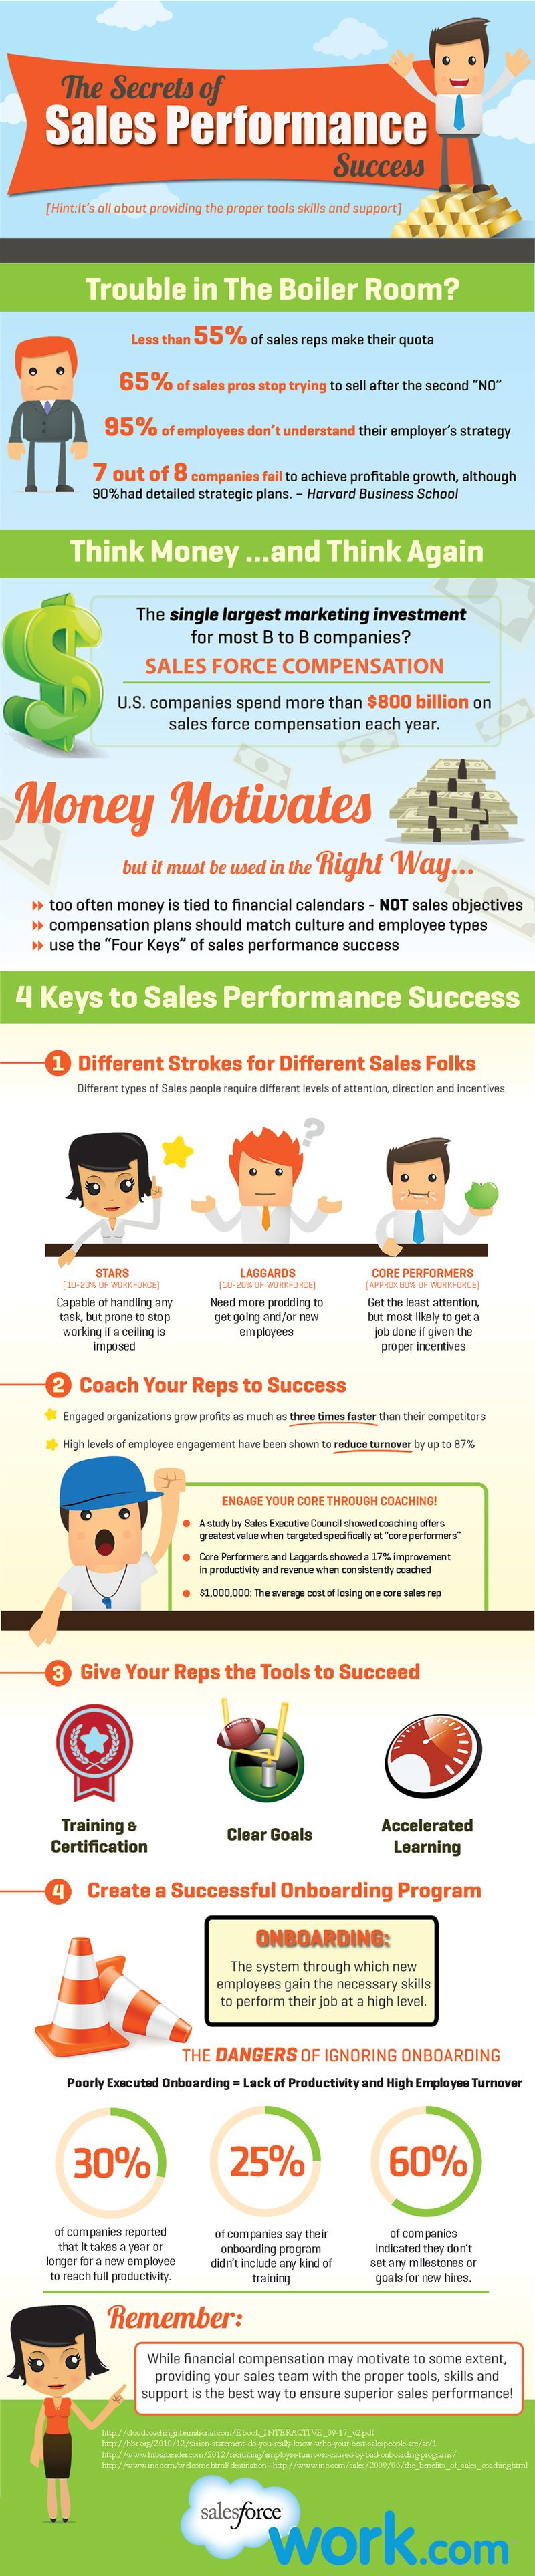 Improve-Sales-Performance